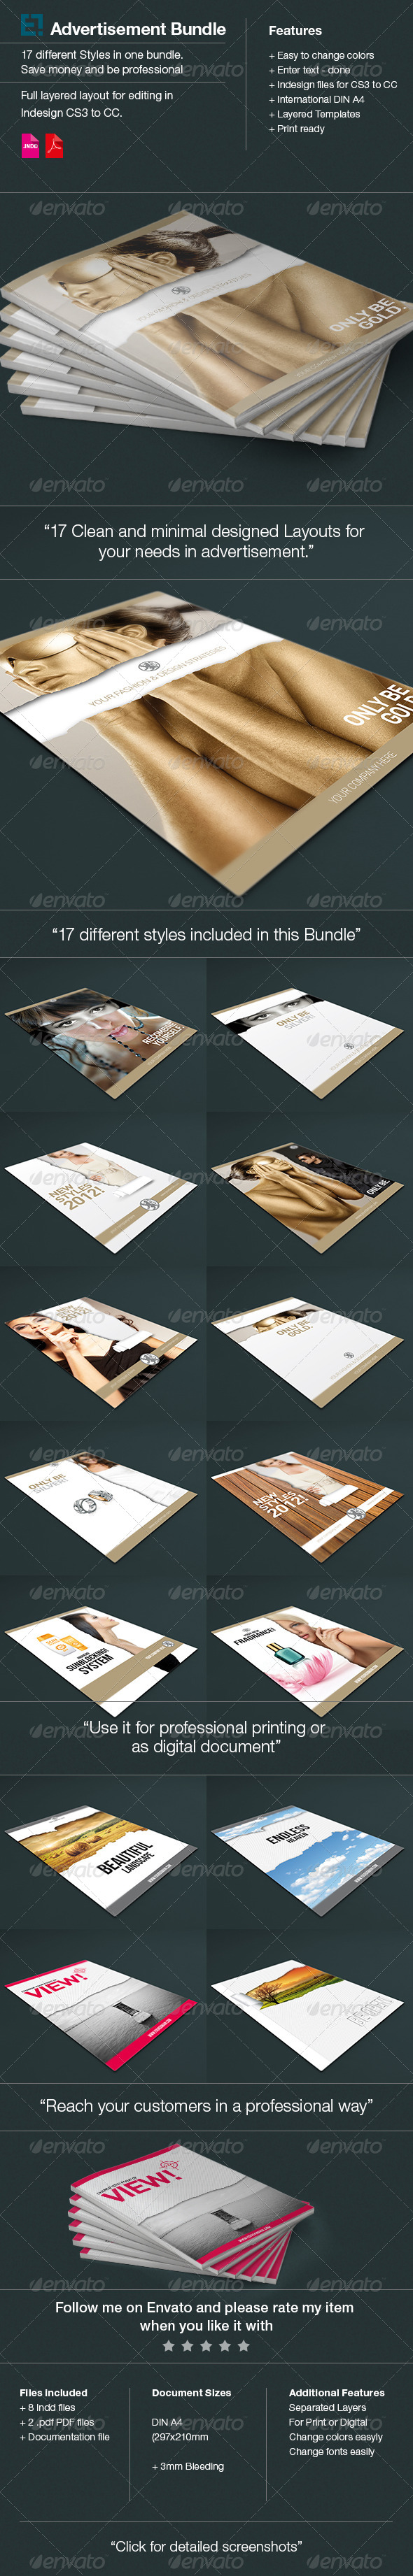 17 Layouts Advertisments Bundle - Flyers Print Templates